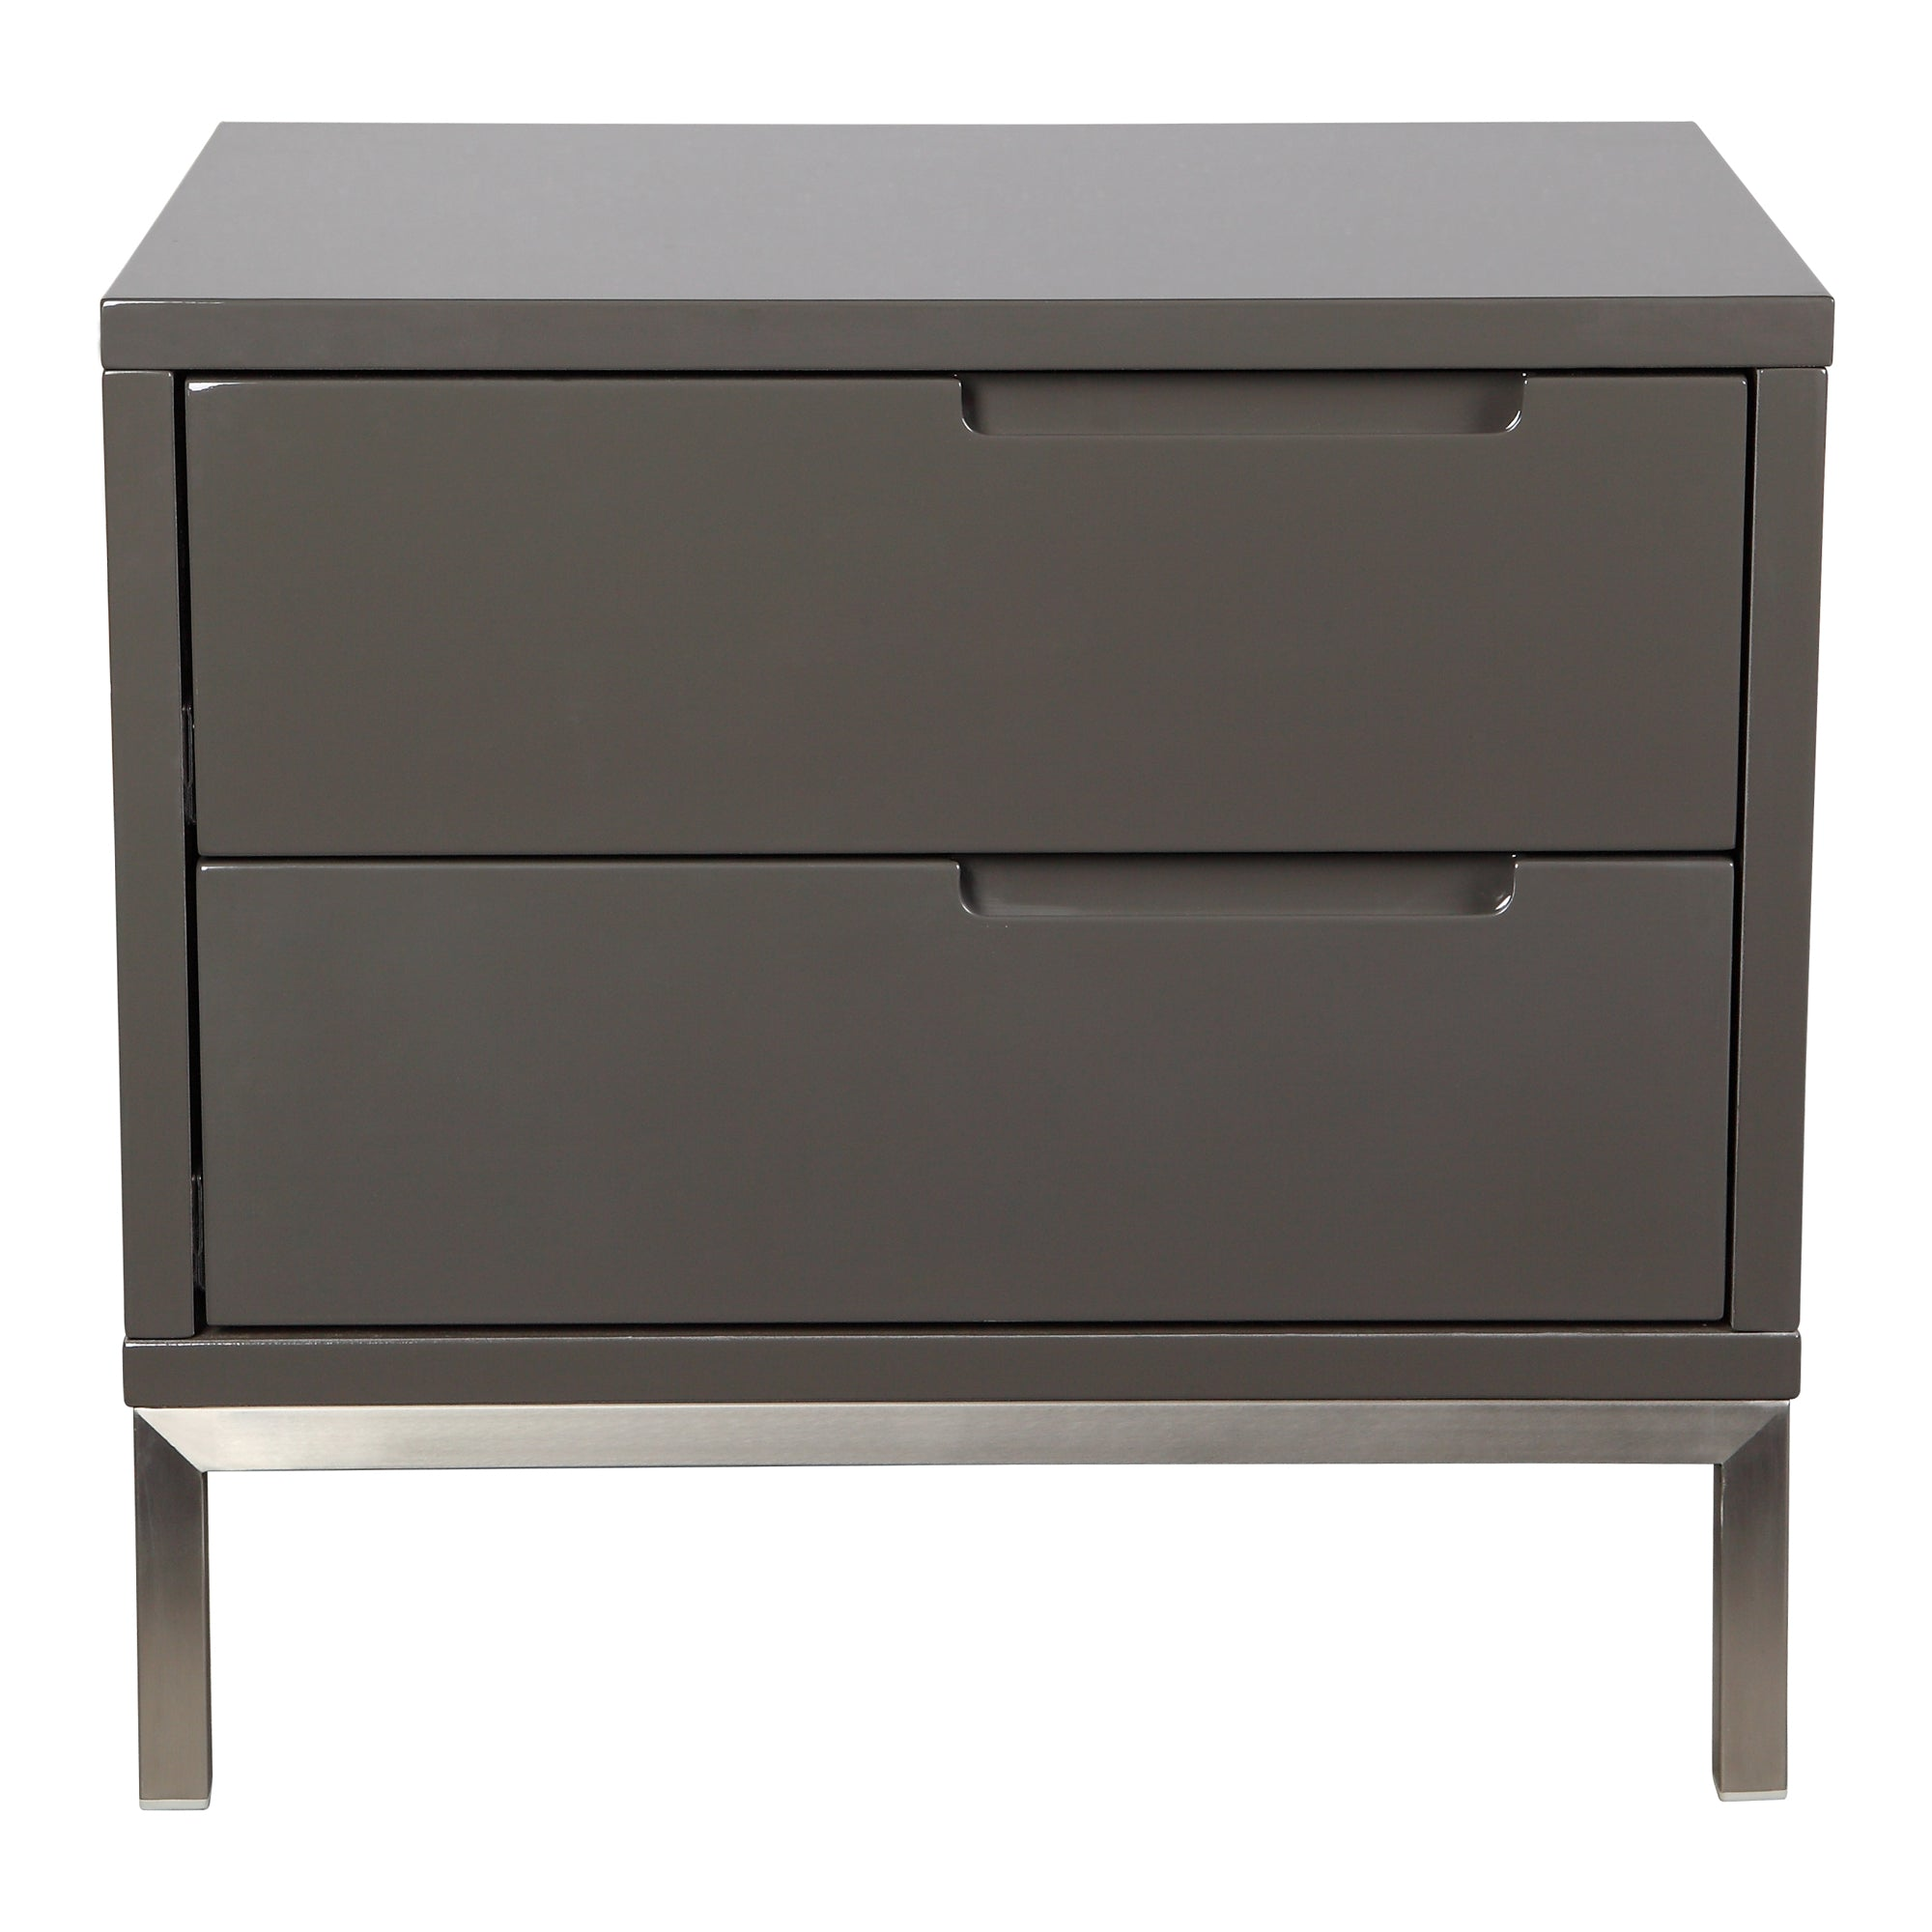 Naples side table, grey - Tops-Dress